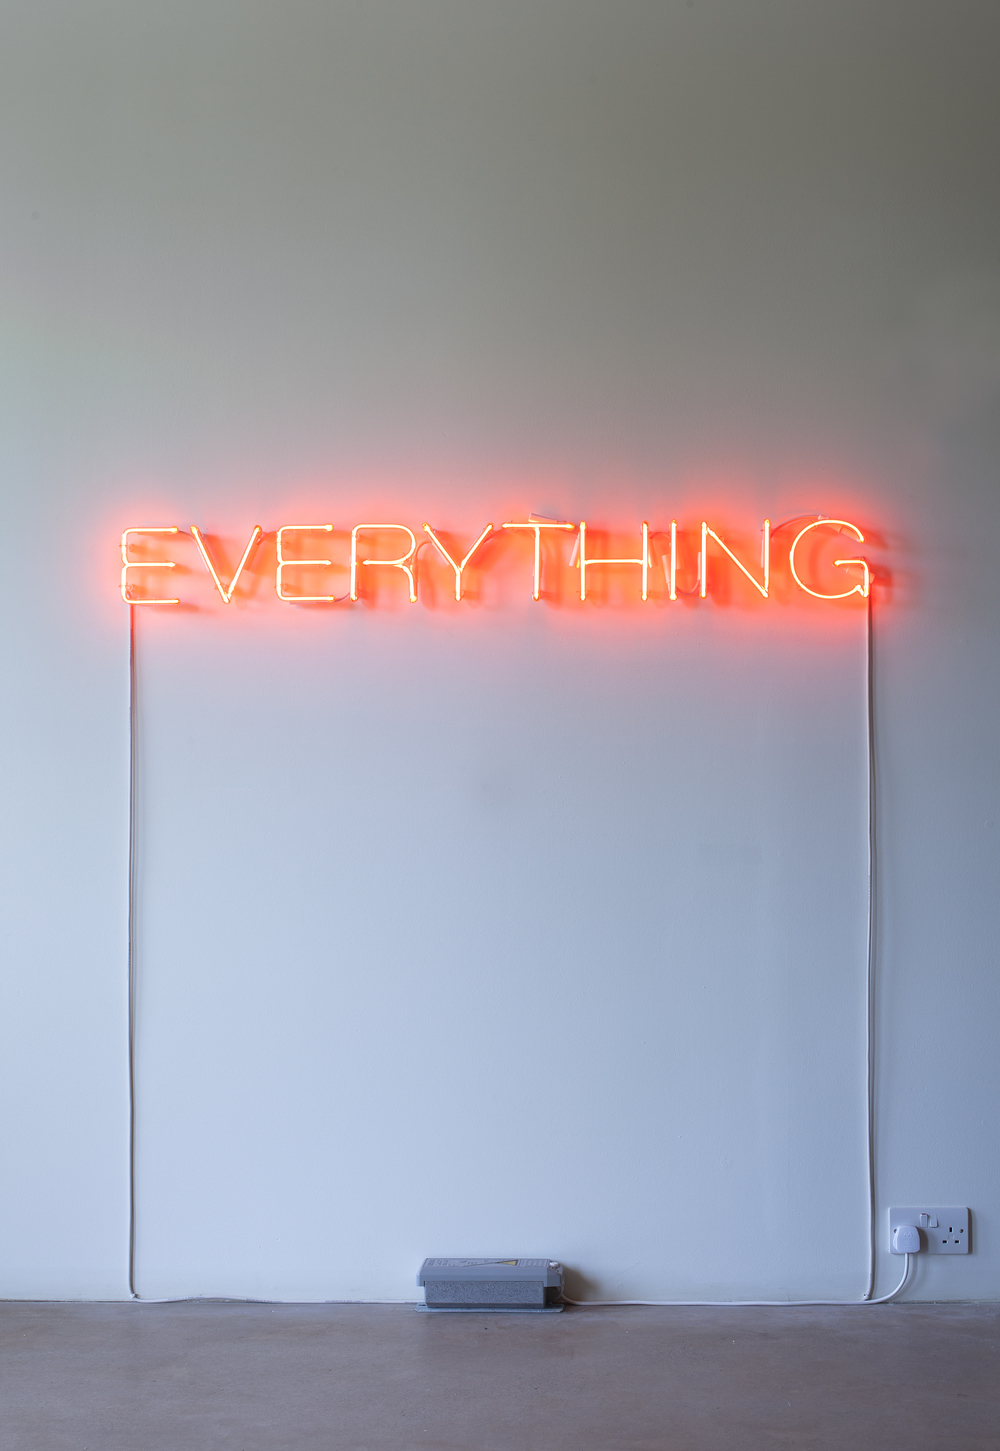 Work No. 2665  EVERYTHING 2016 Clear red neon 6 in / 15.2 cm high  Installation view, 'Martin Creed. What You Find', Hauser & Wirth Somerset, 2016 © Martin Creed Courtesy the artist and Hauser & Wirth Photo: Hugo Glendinning